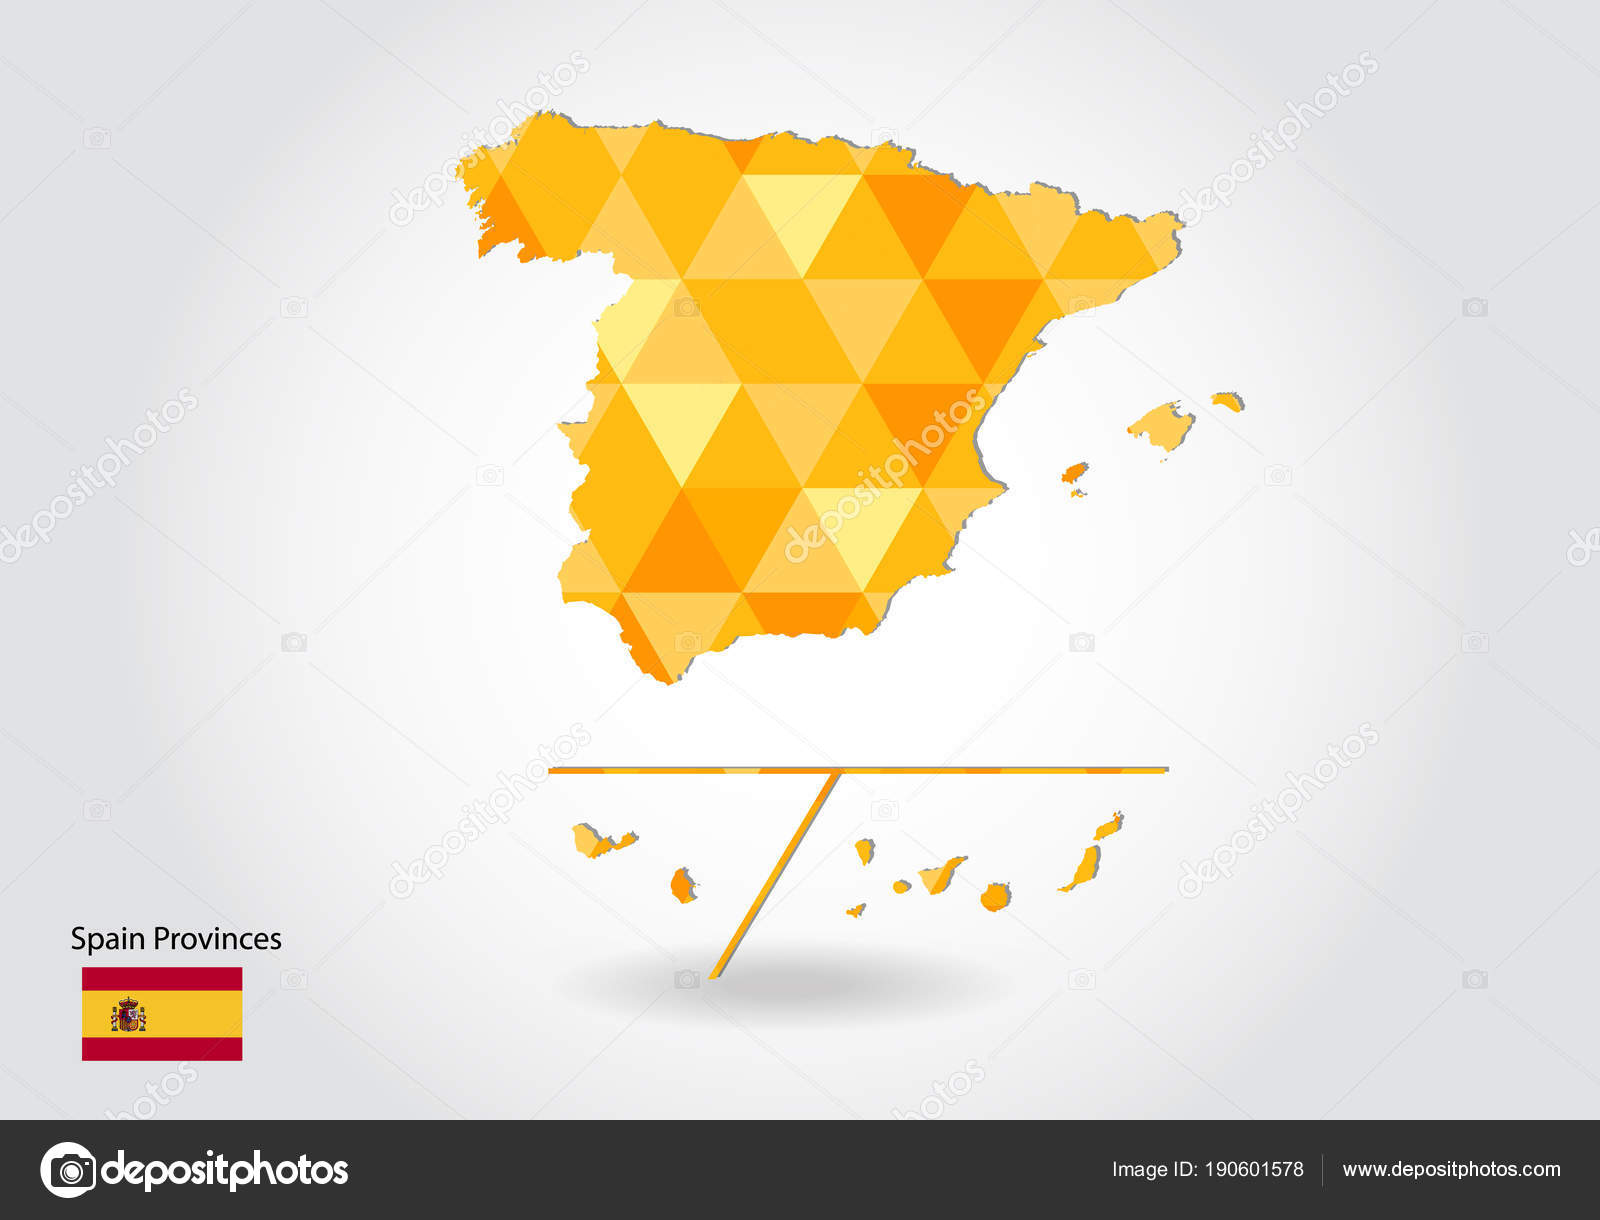 Geometric Polygonal Style Vector Map Spain Provinces Low Poly Map